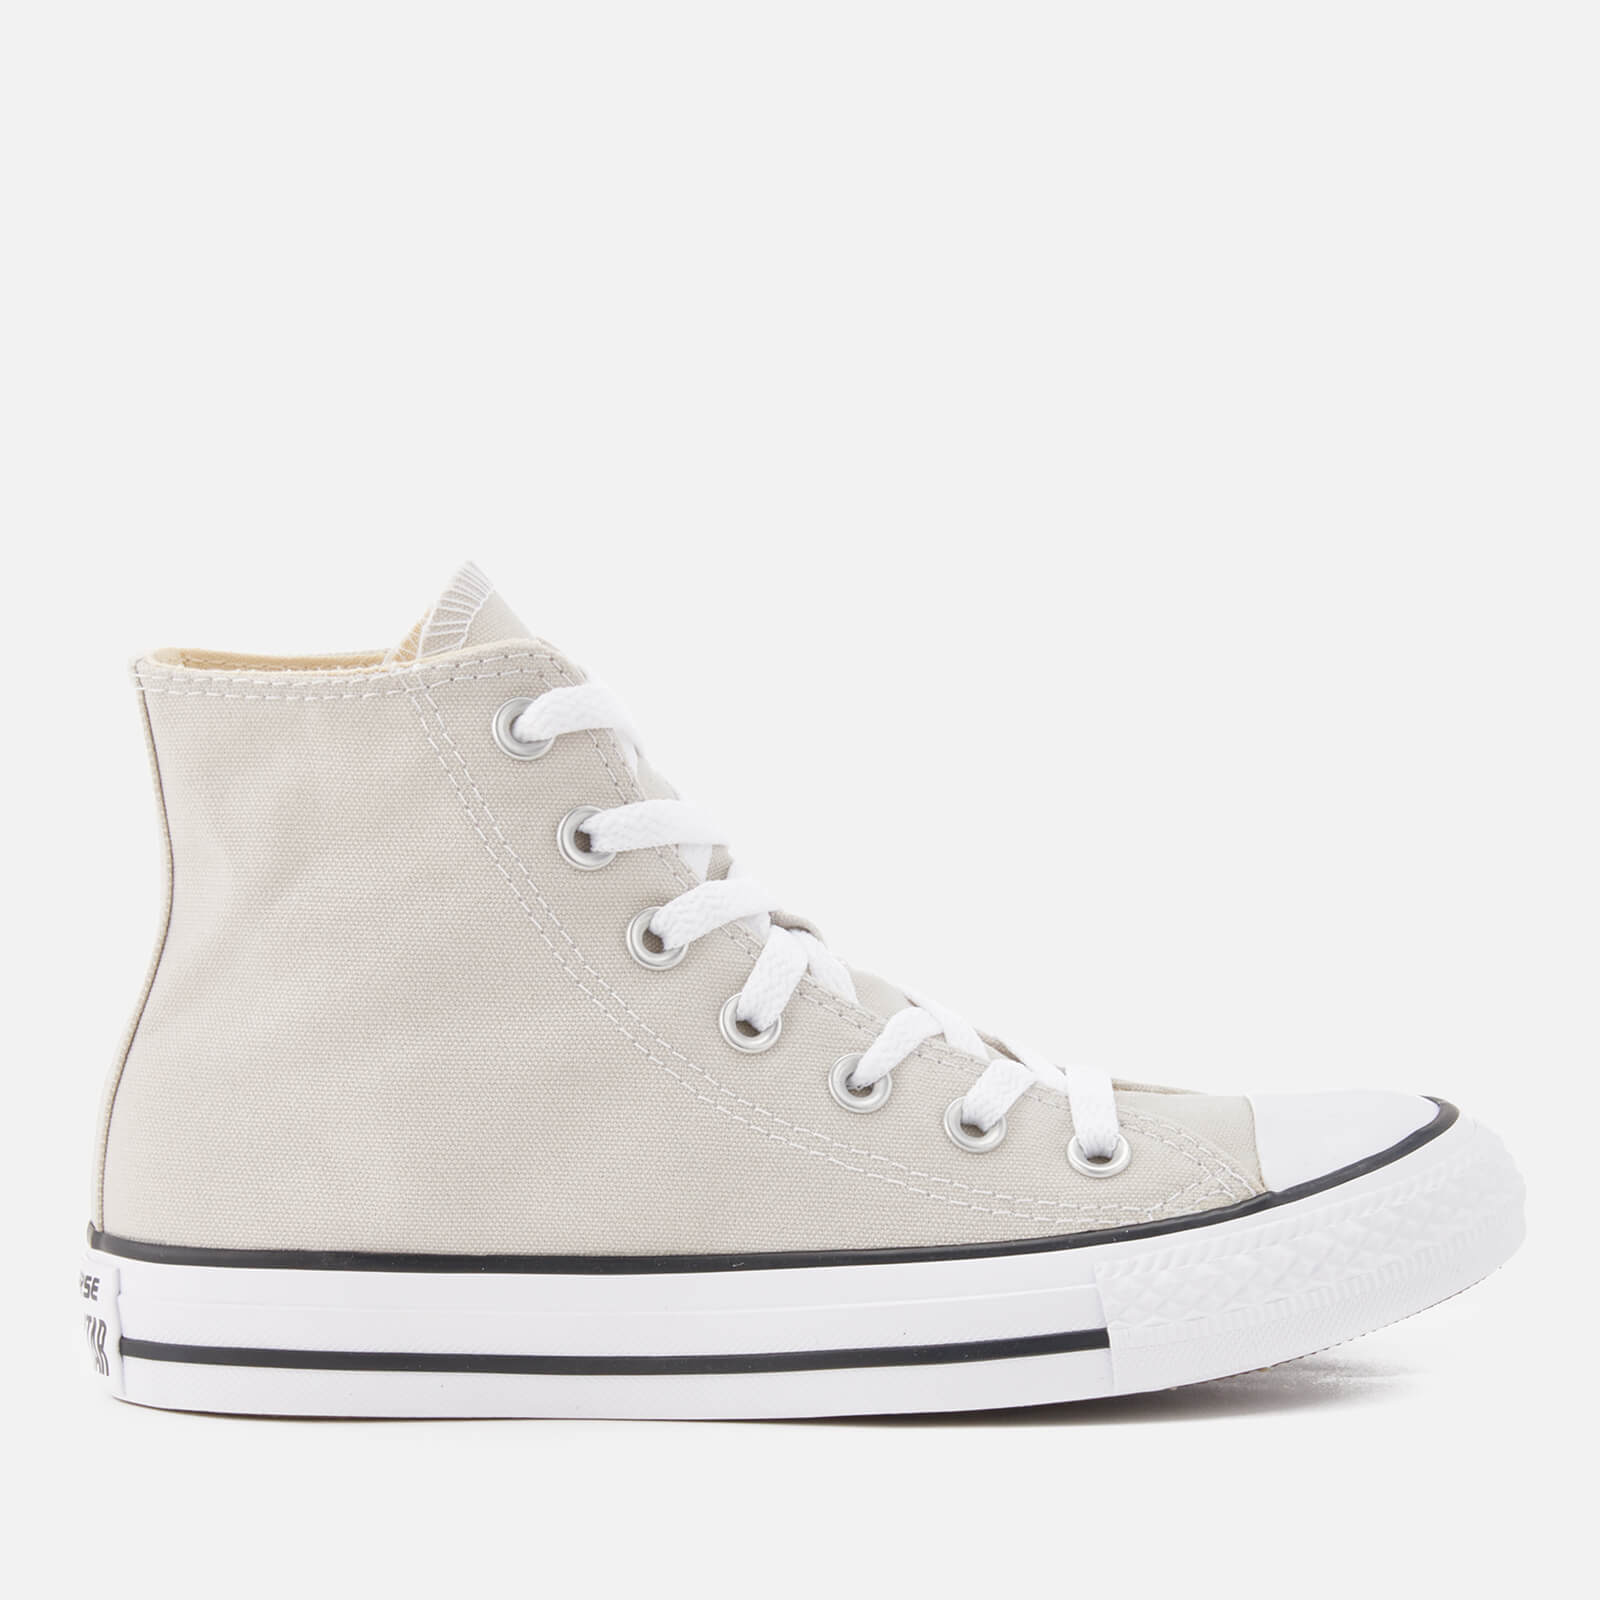 08699a35e11c Converse Women s Chuck Taylor All Star Hi-Top Trainers - Pale Putty ...